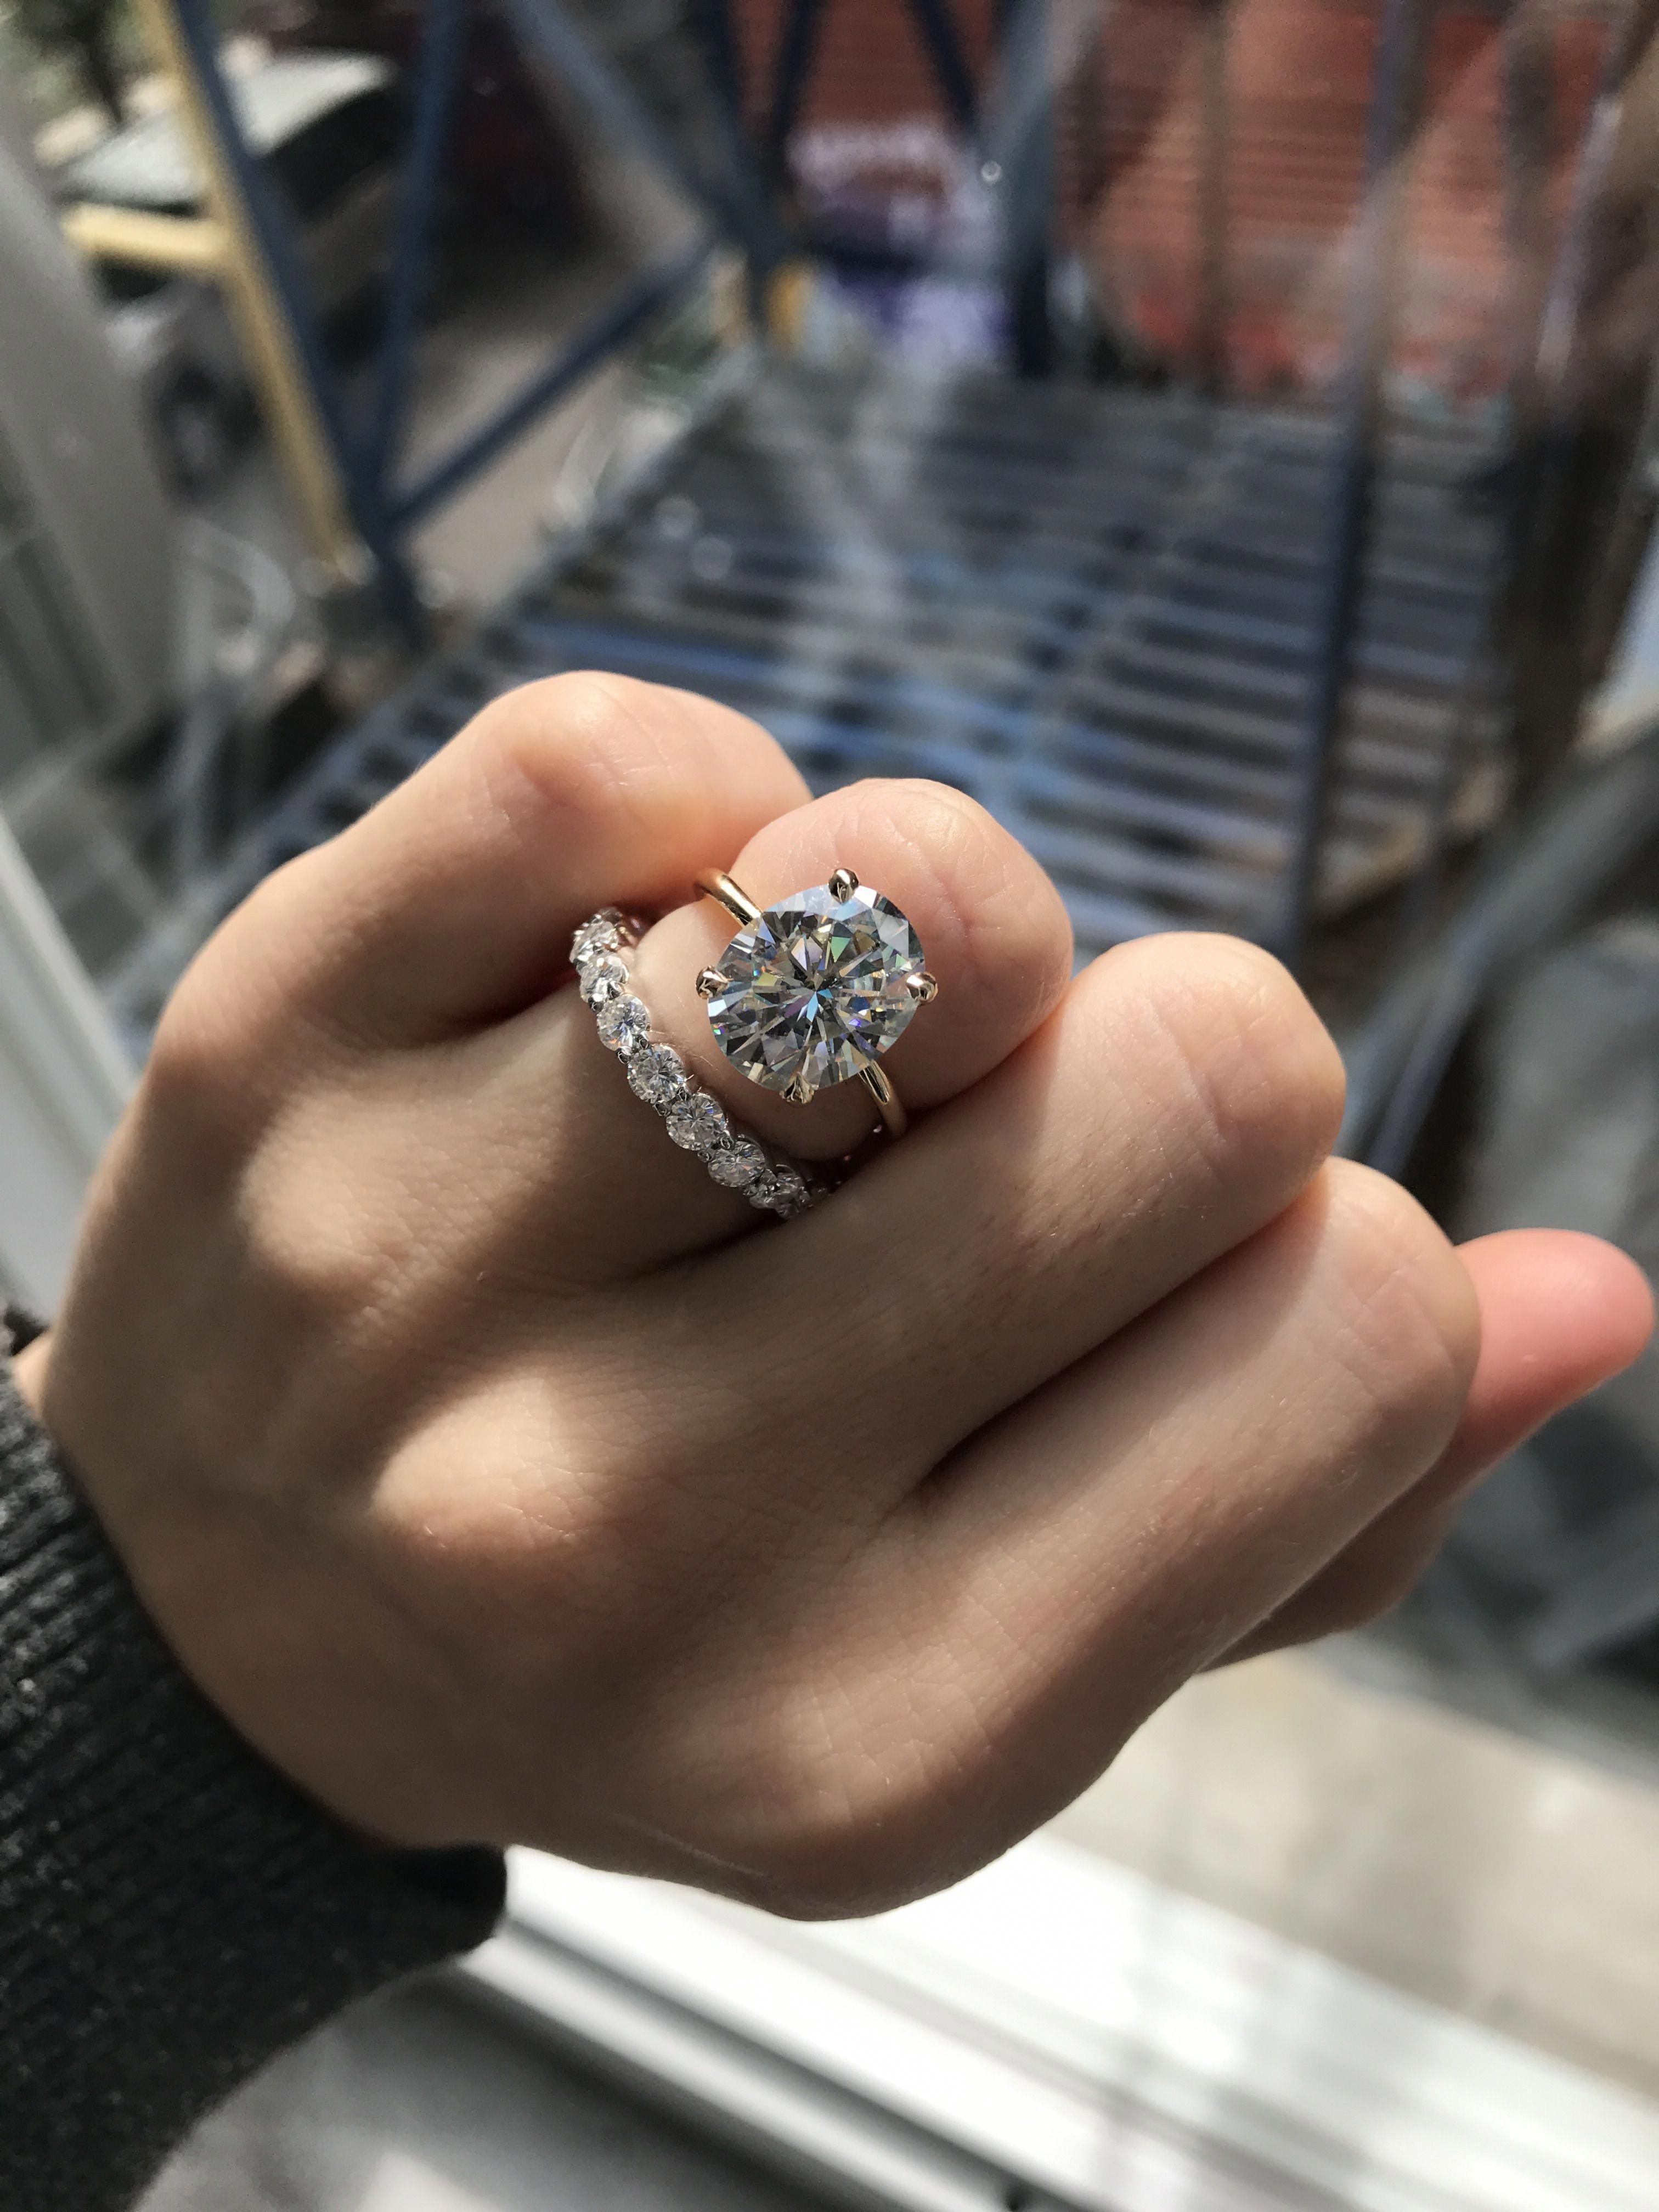 Four 4 carat Juno solitaire moissanite in yellow gold